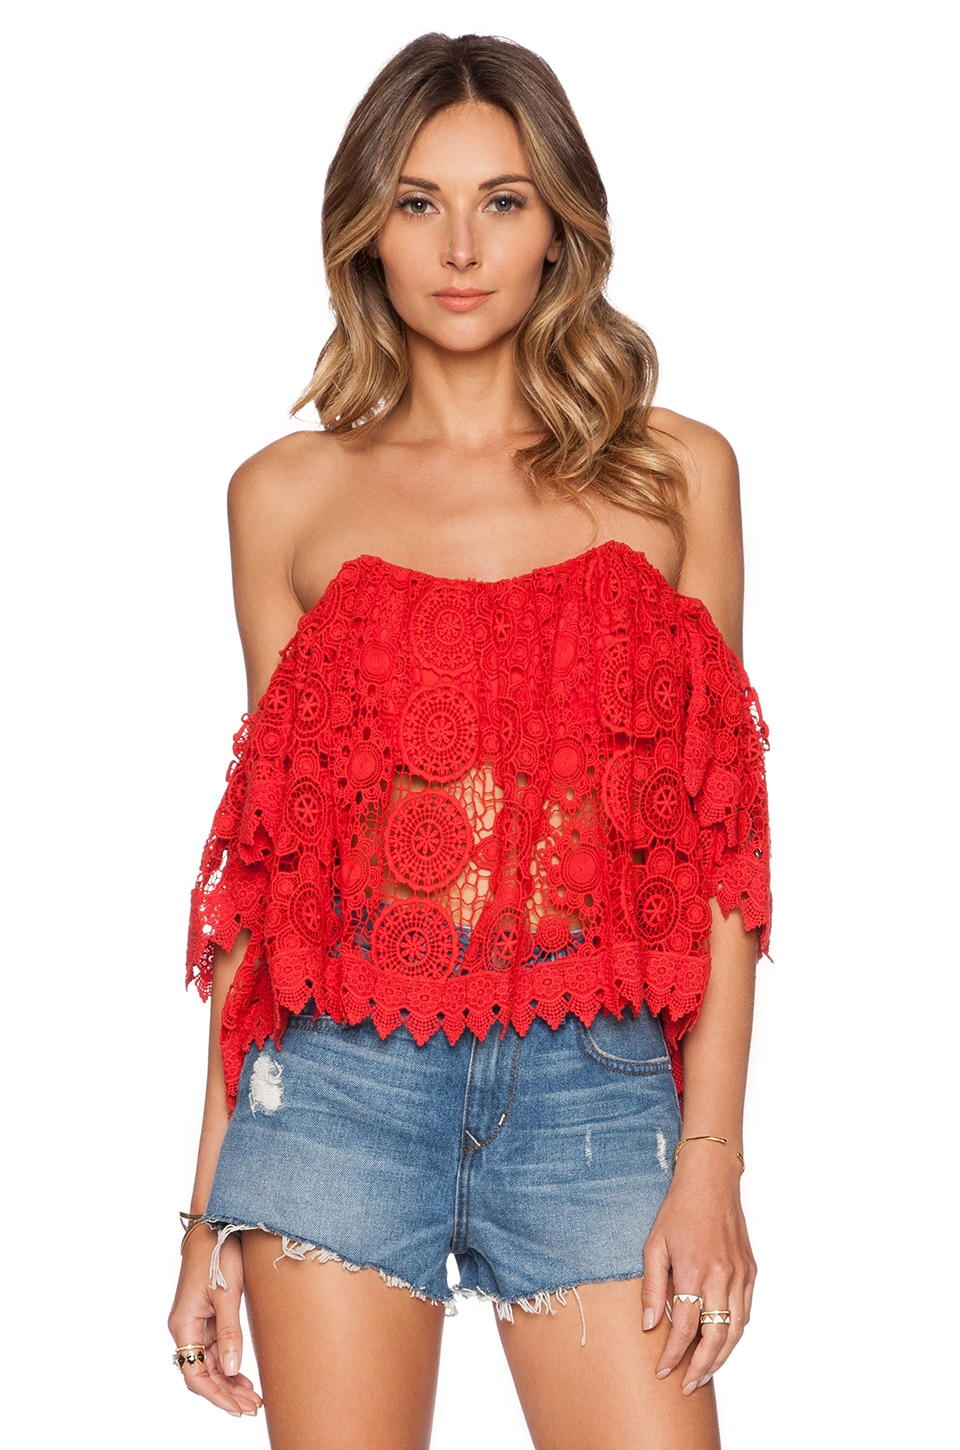 Tularosa Amelia Crop Top in Cayenne